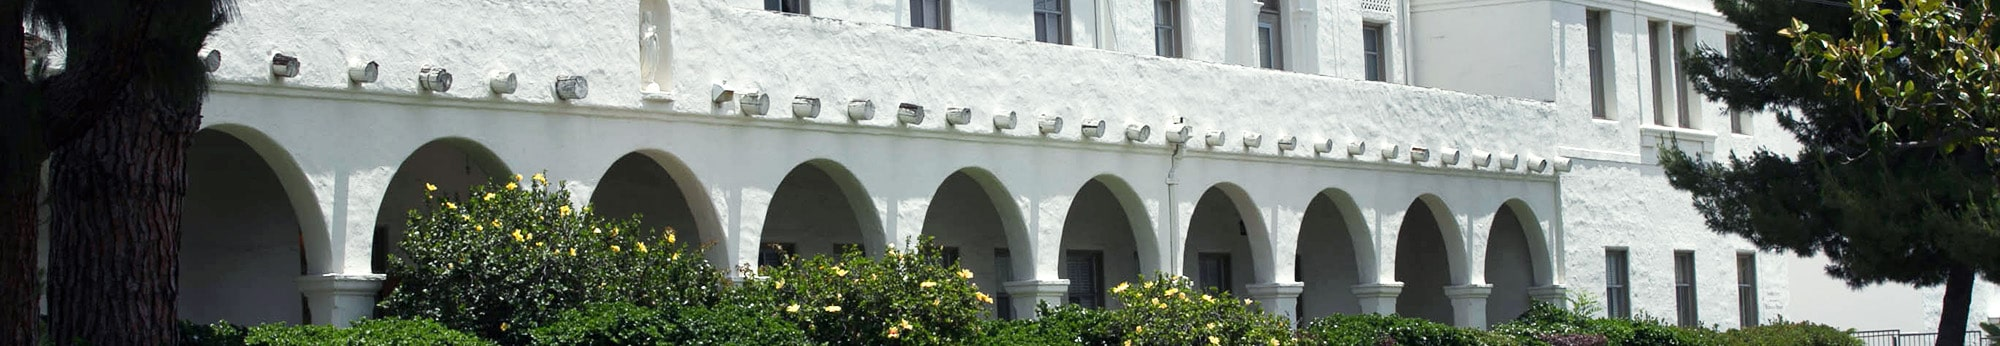 Side view of Nazarath School highlighting the arches